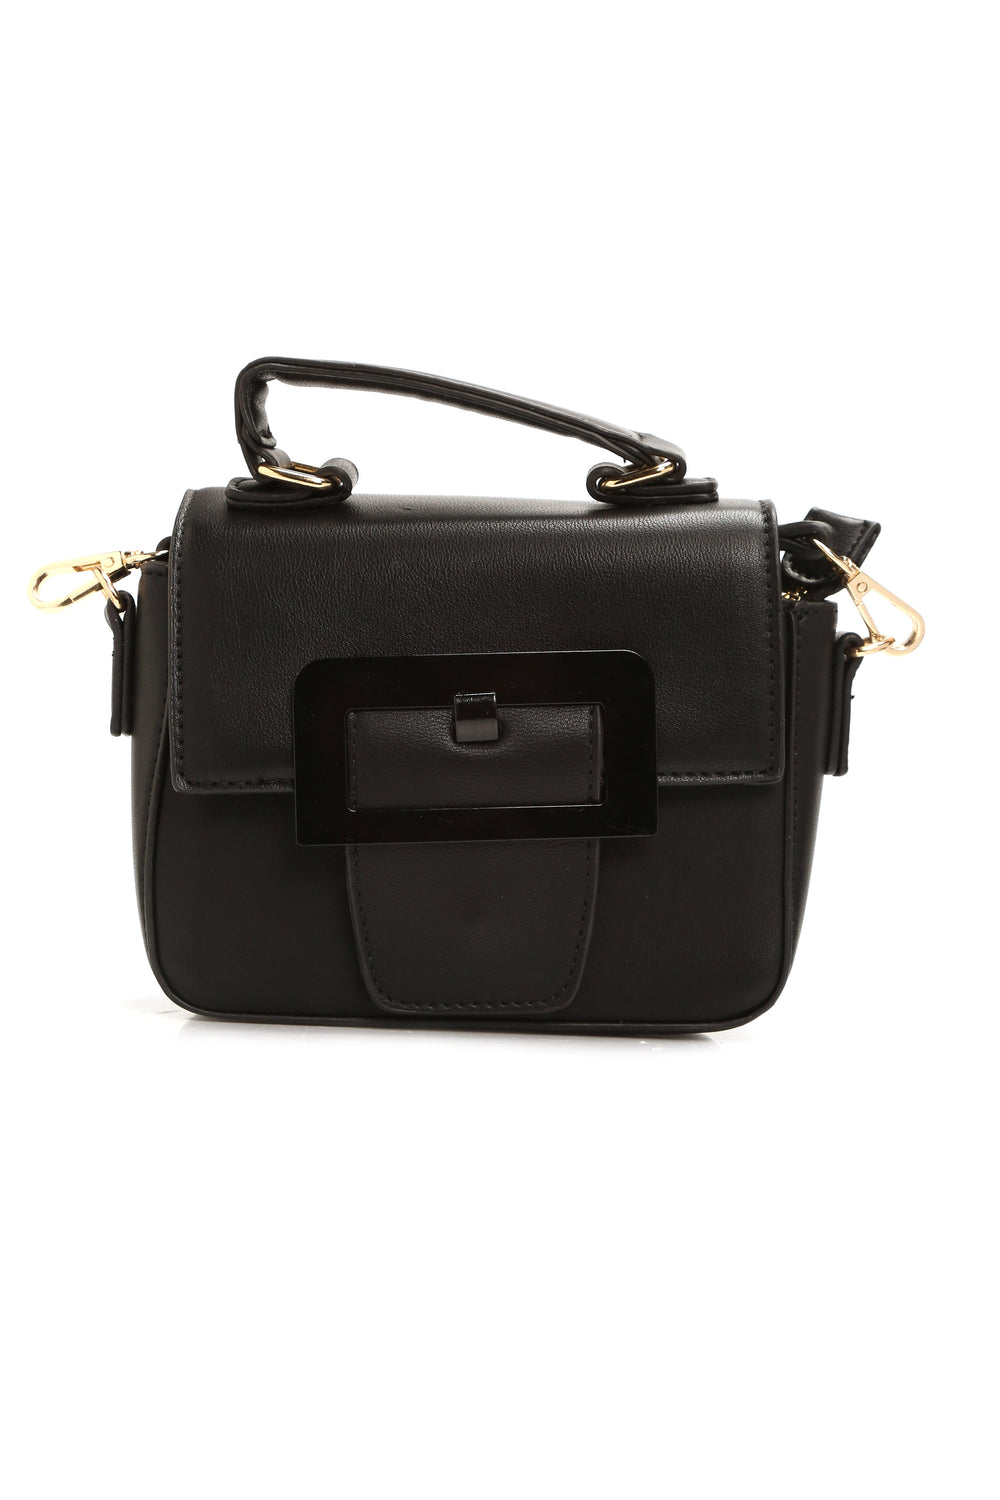 Buckle Up Crossbody Bag - Black